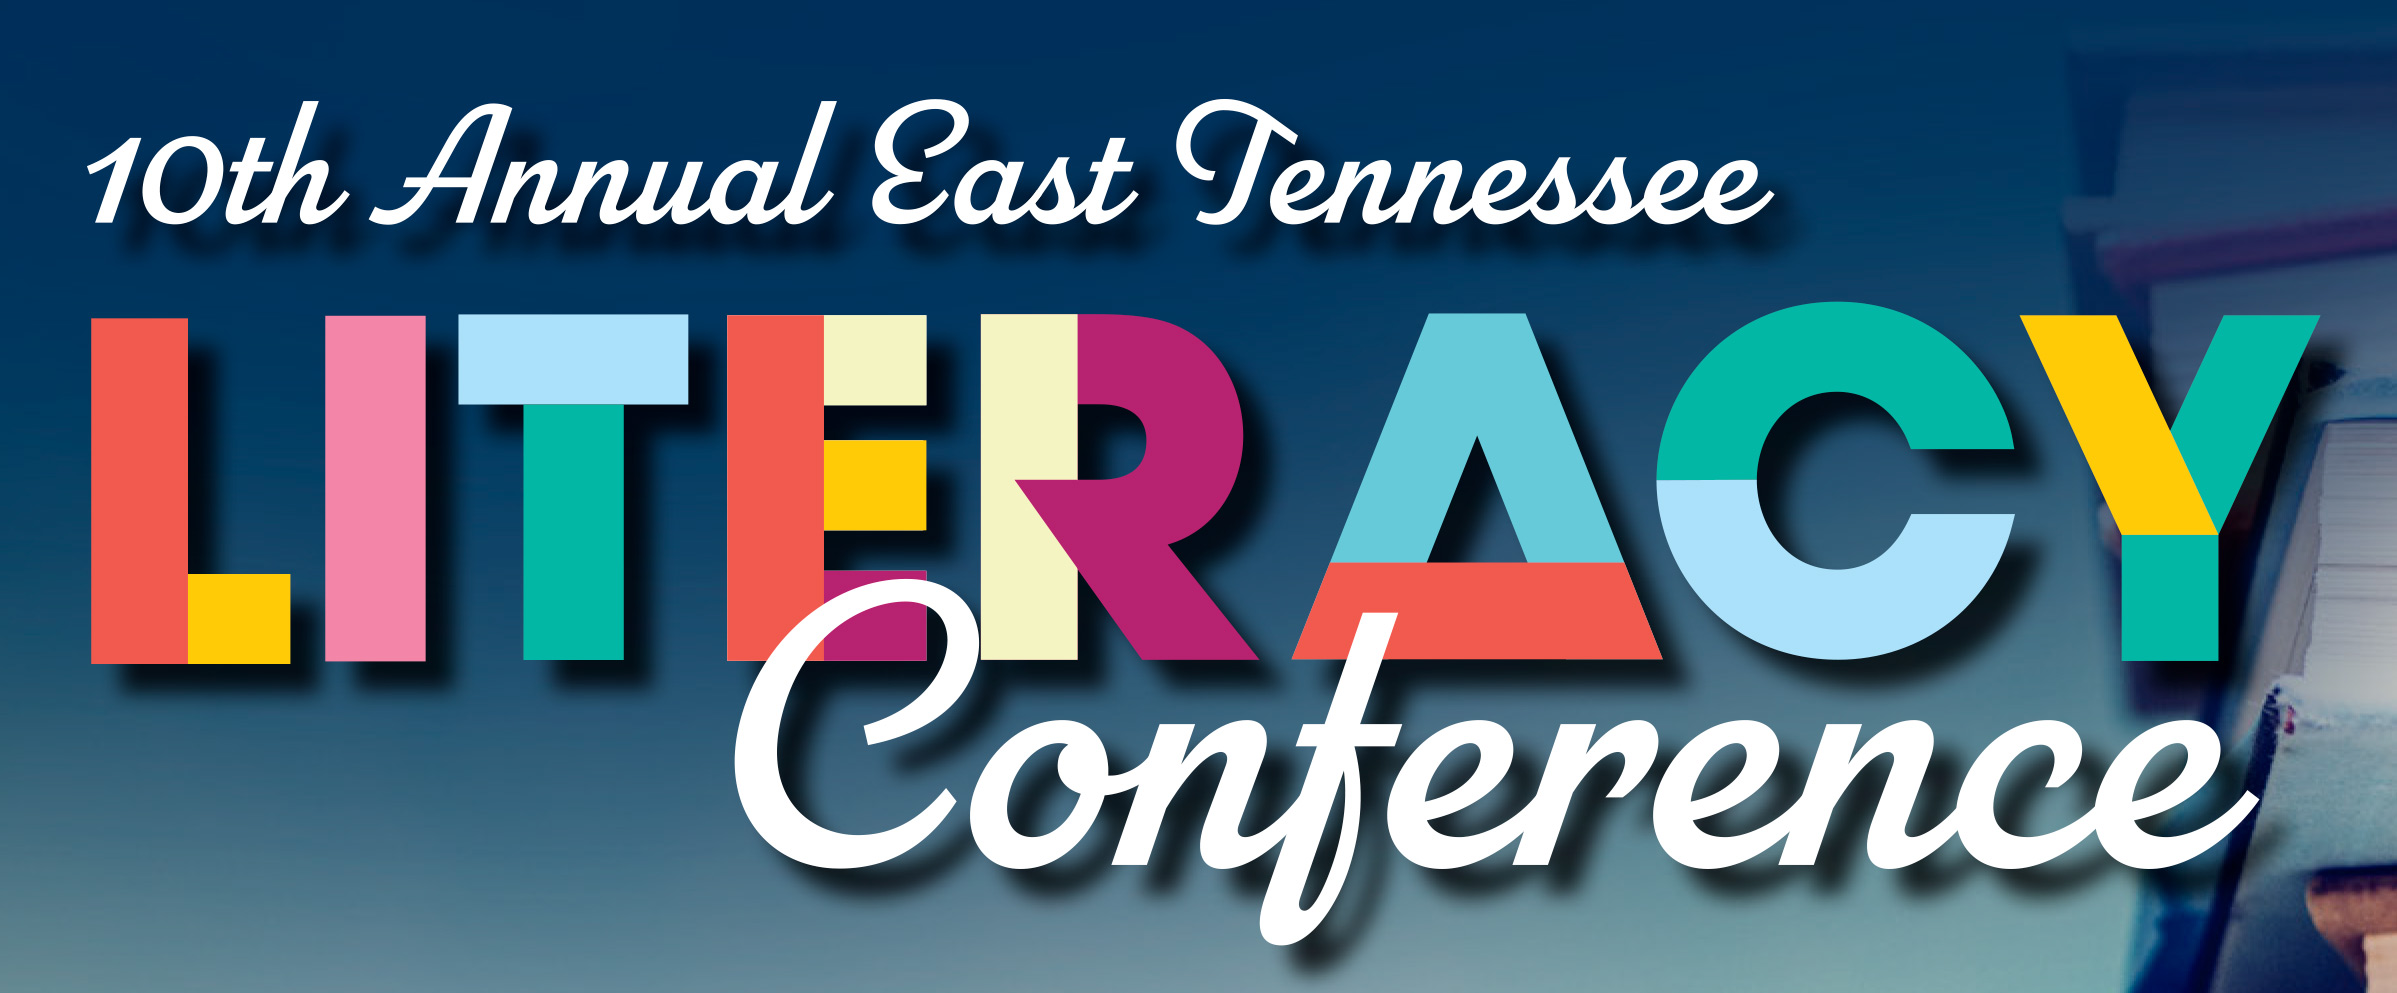 East Tennessee Literacy Conference